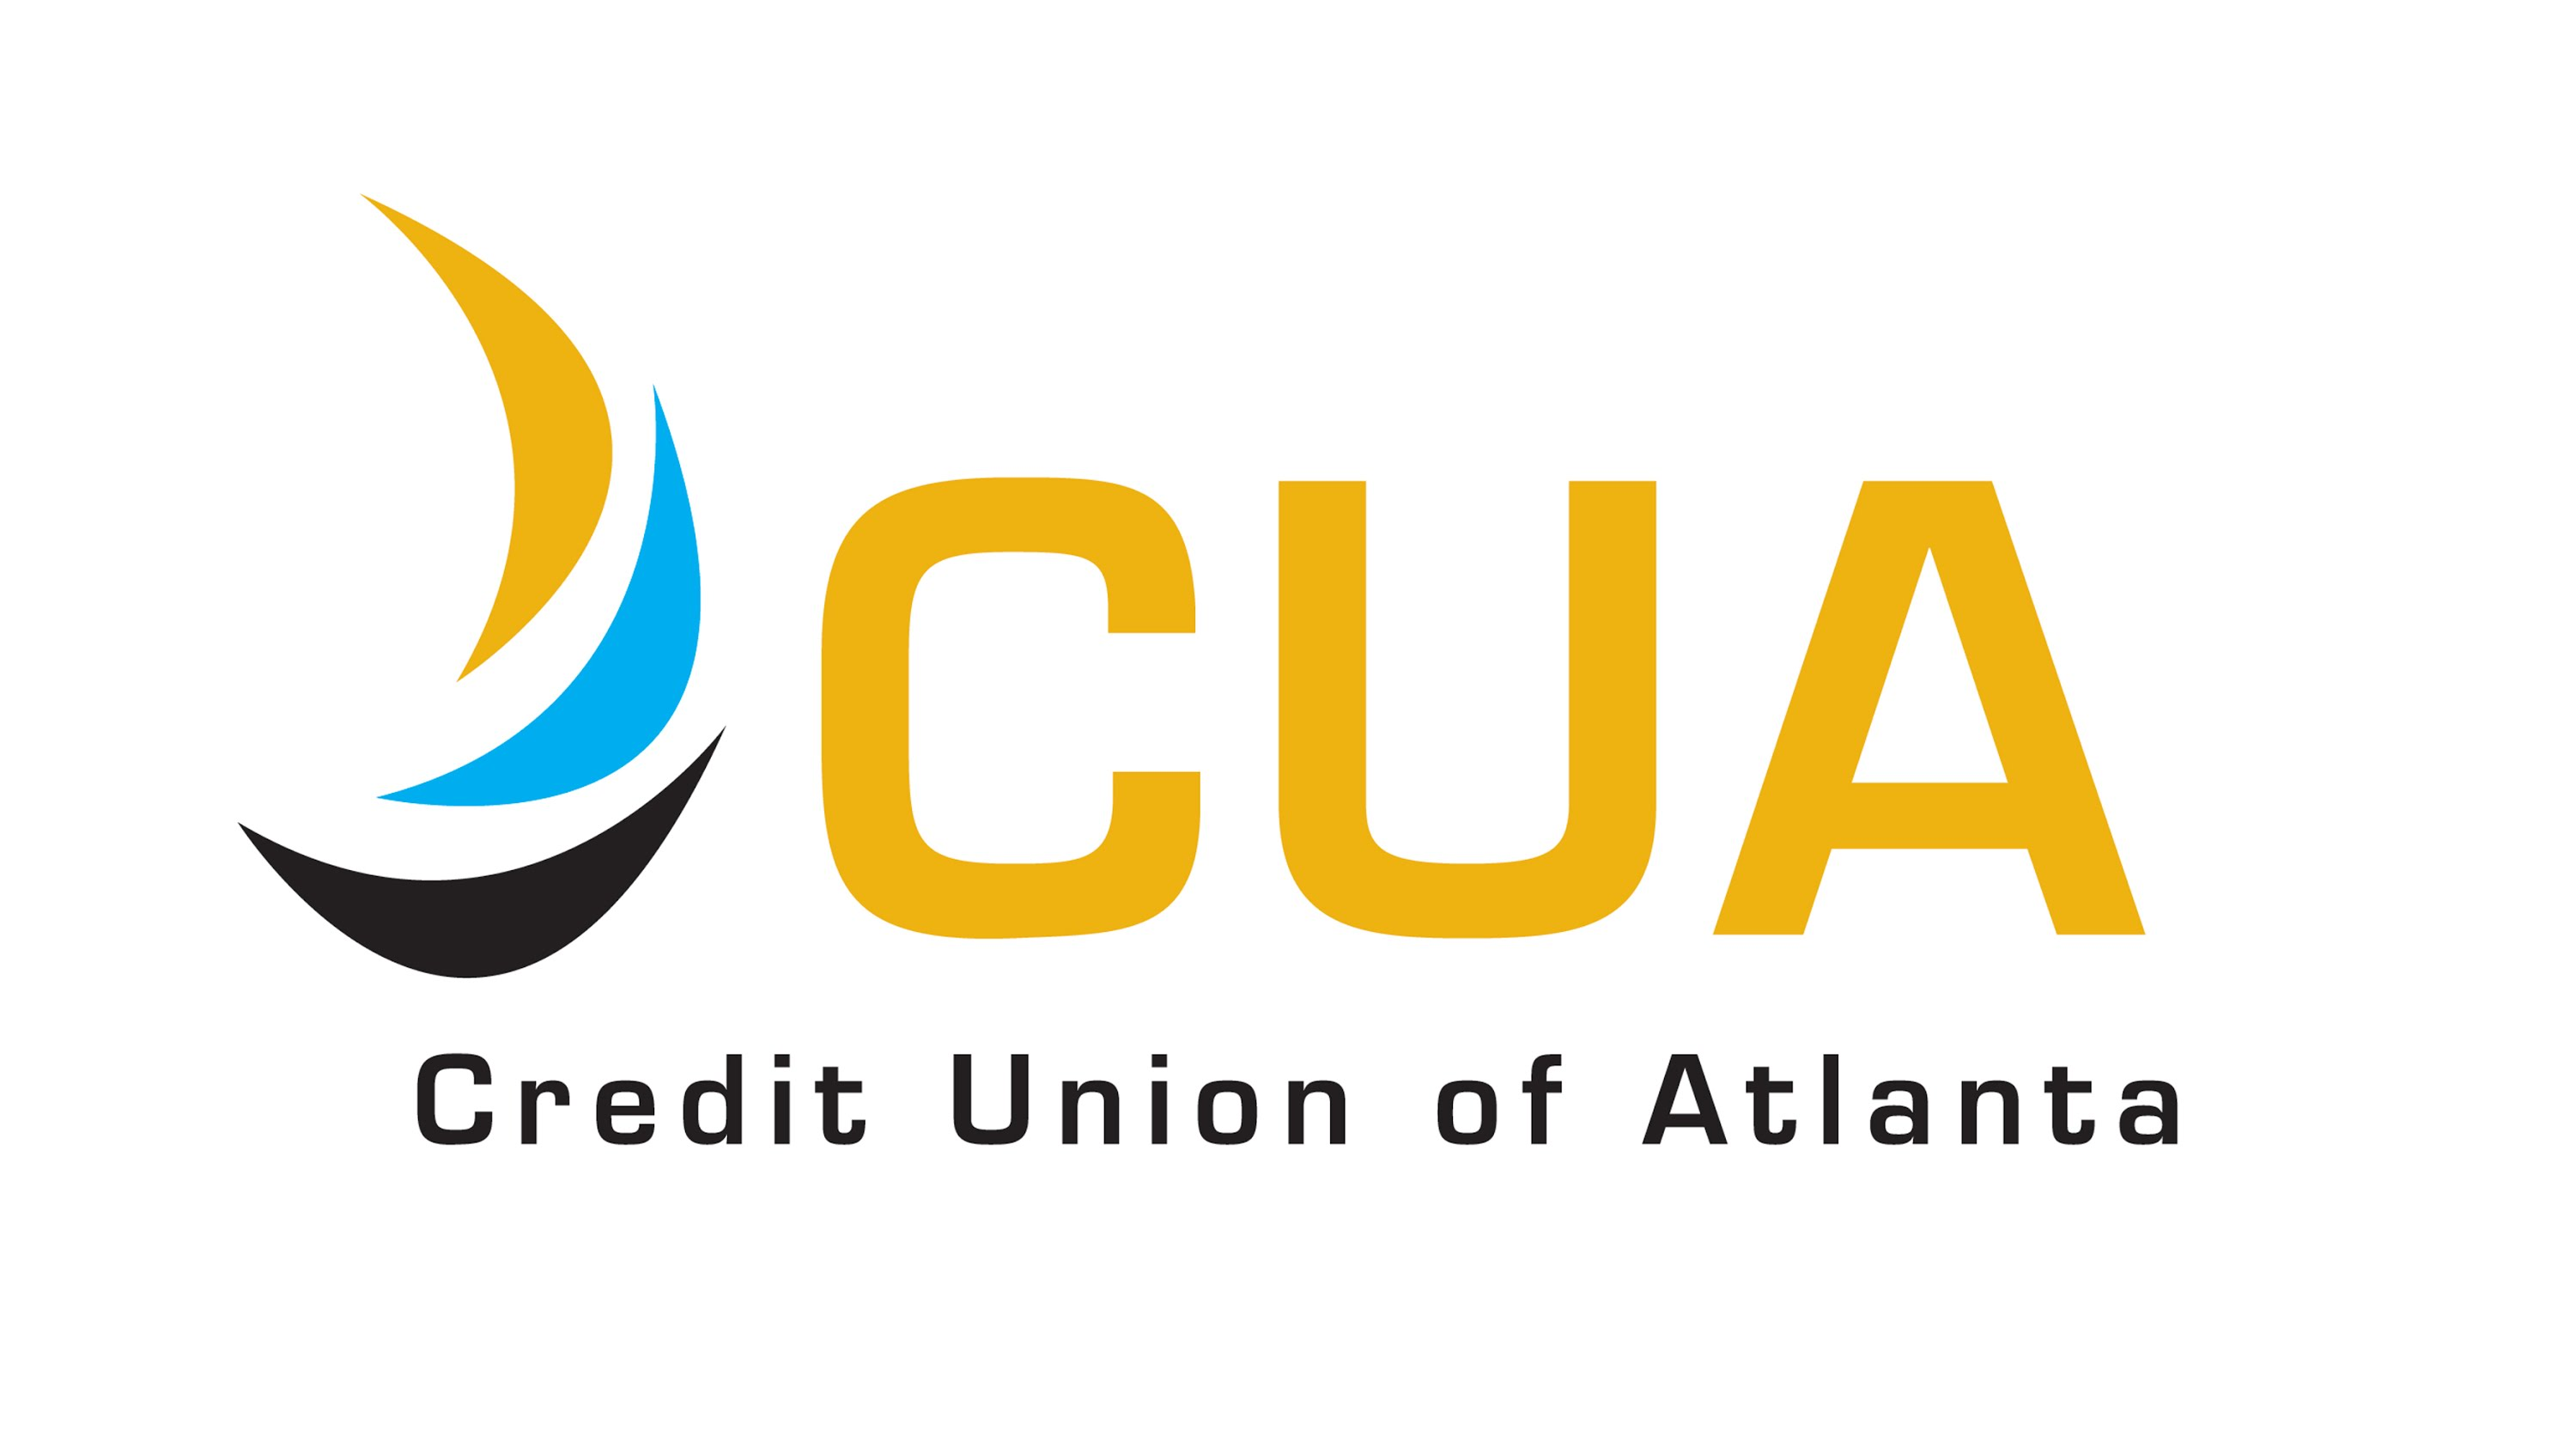 Credit Union of Atlanta